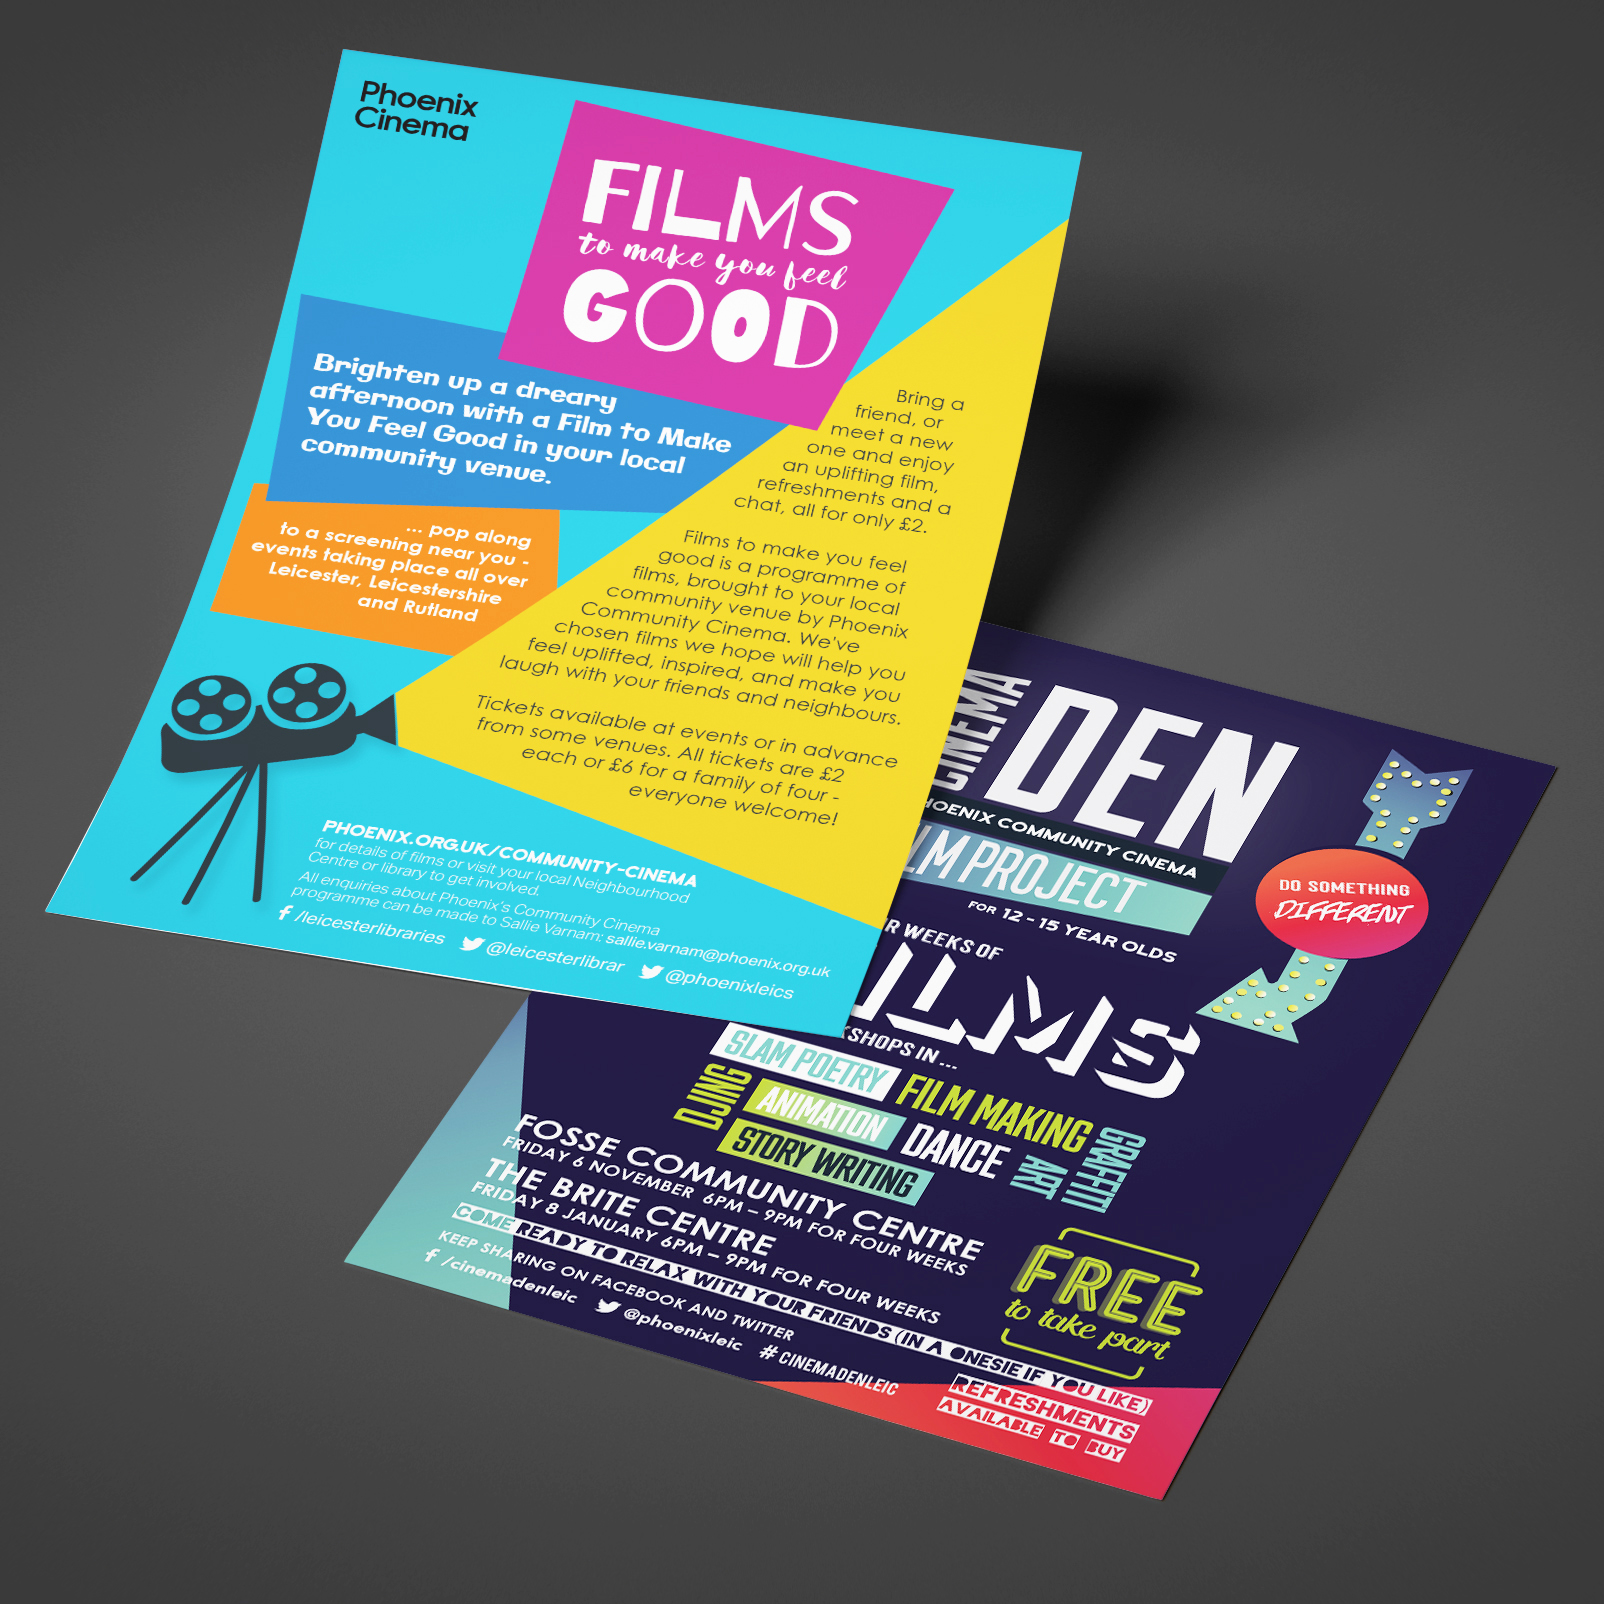 Two leaflets for Phoenix cinemas; films to make you feel good and cinema den.